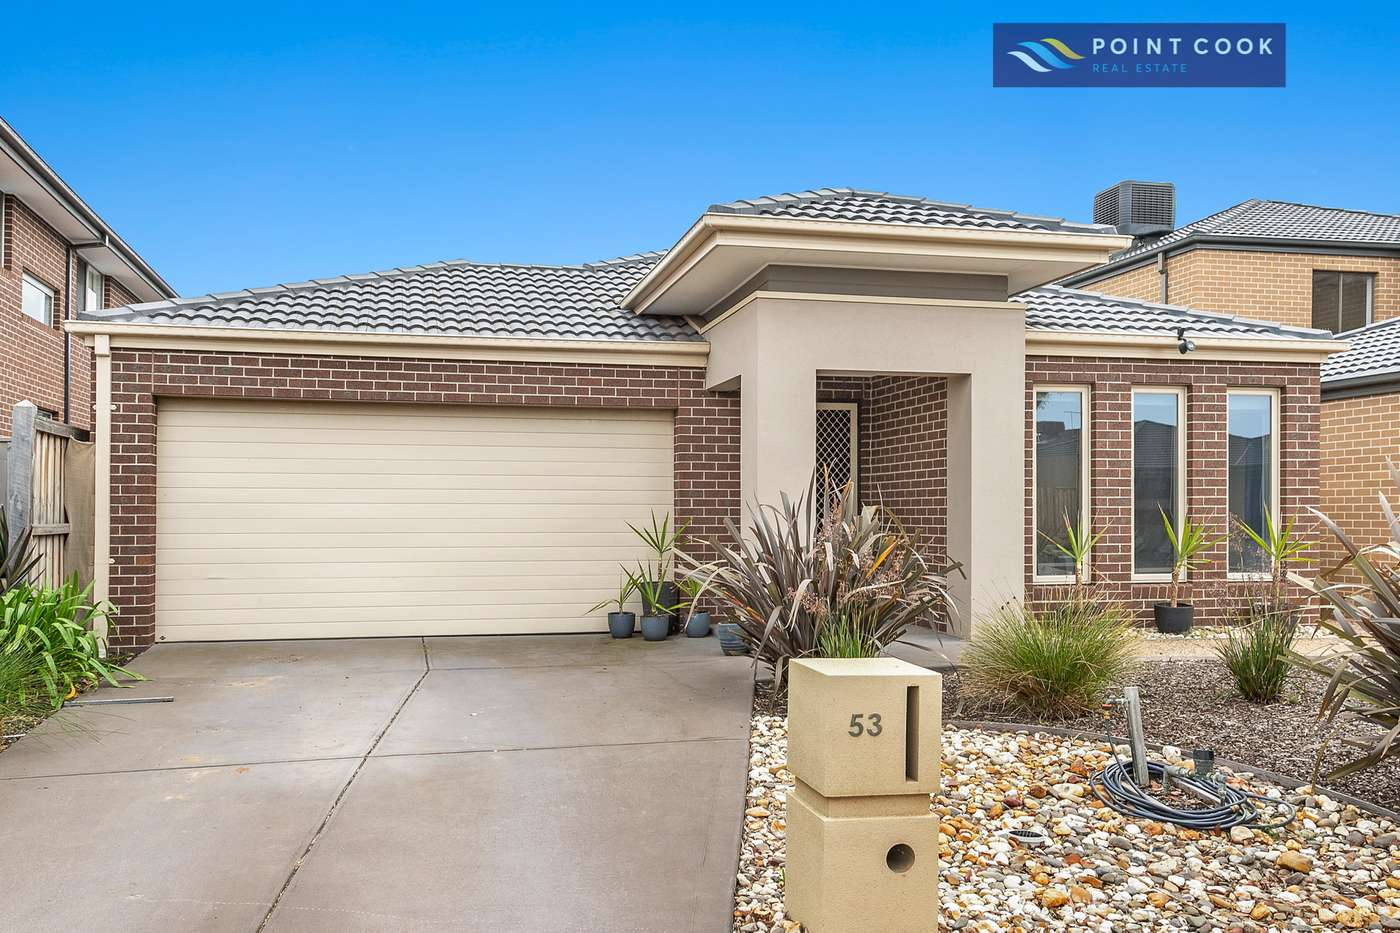 Main view of Homely house listing, 53 Cooinda Way, Point Cook, VIC 3030